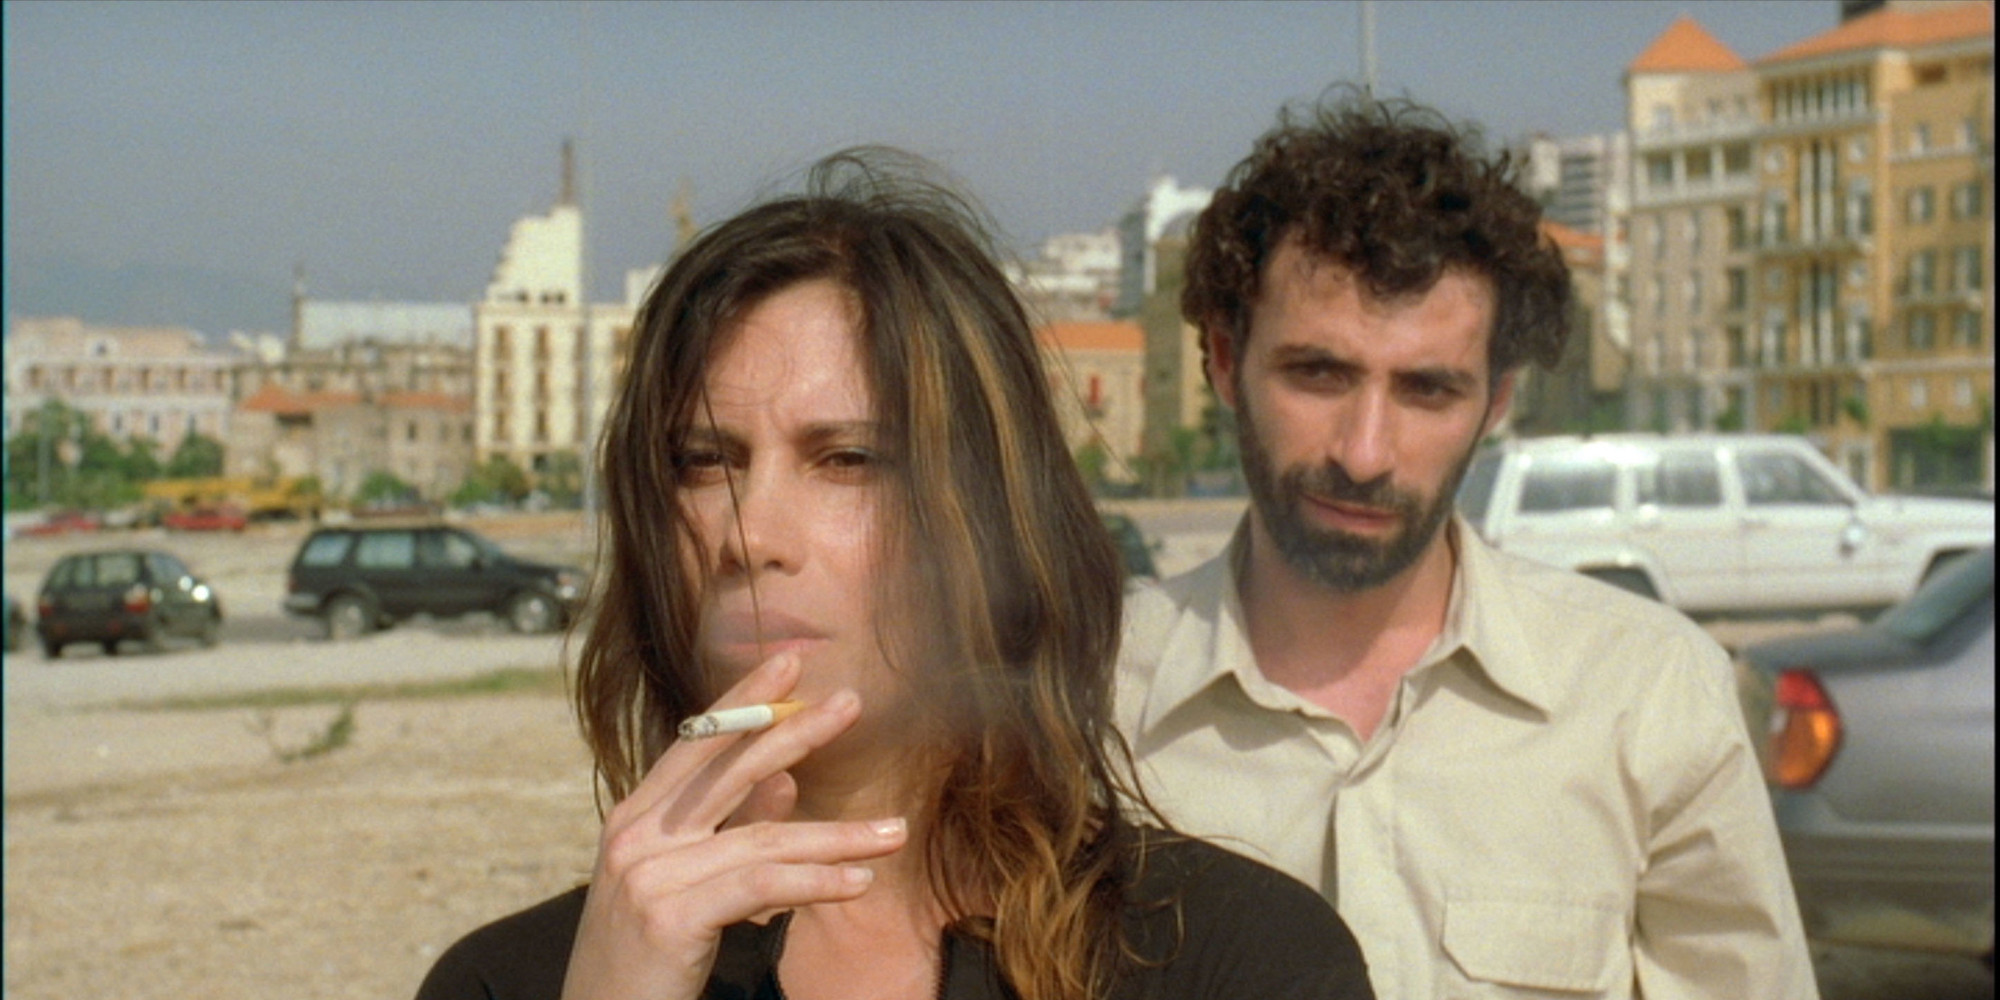 Terra incognita. 2002. Lebanon/France. Directed by Ghassan Salhab. Courtesy the filmmaker